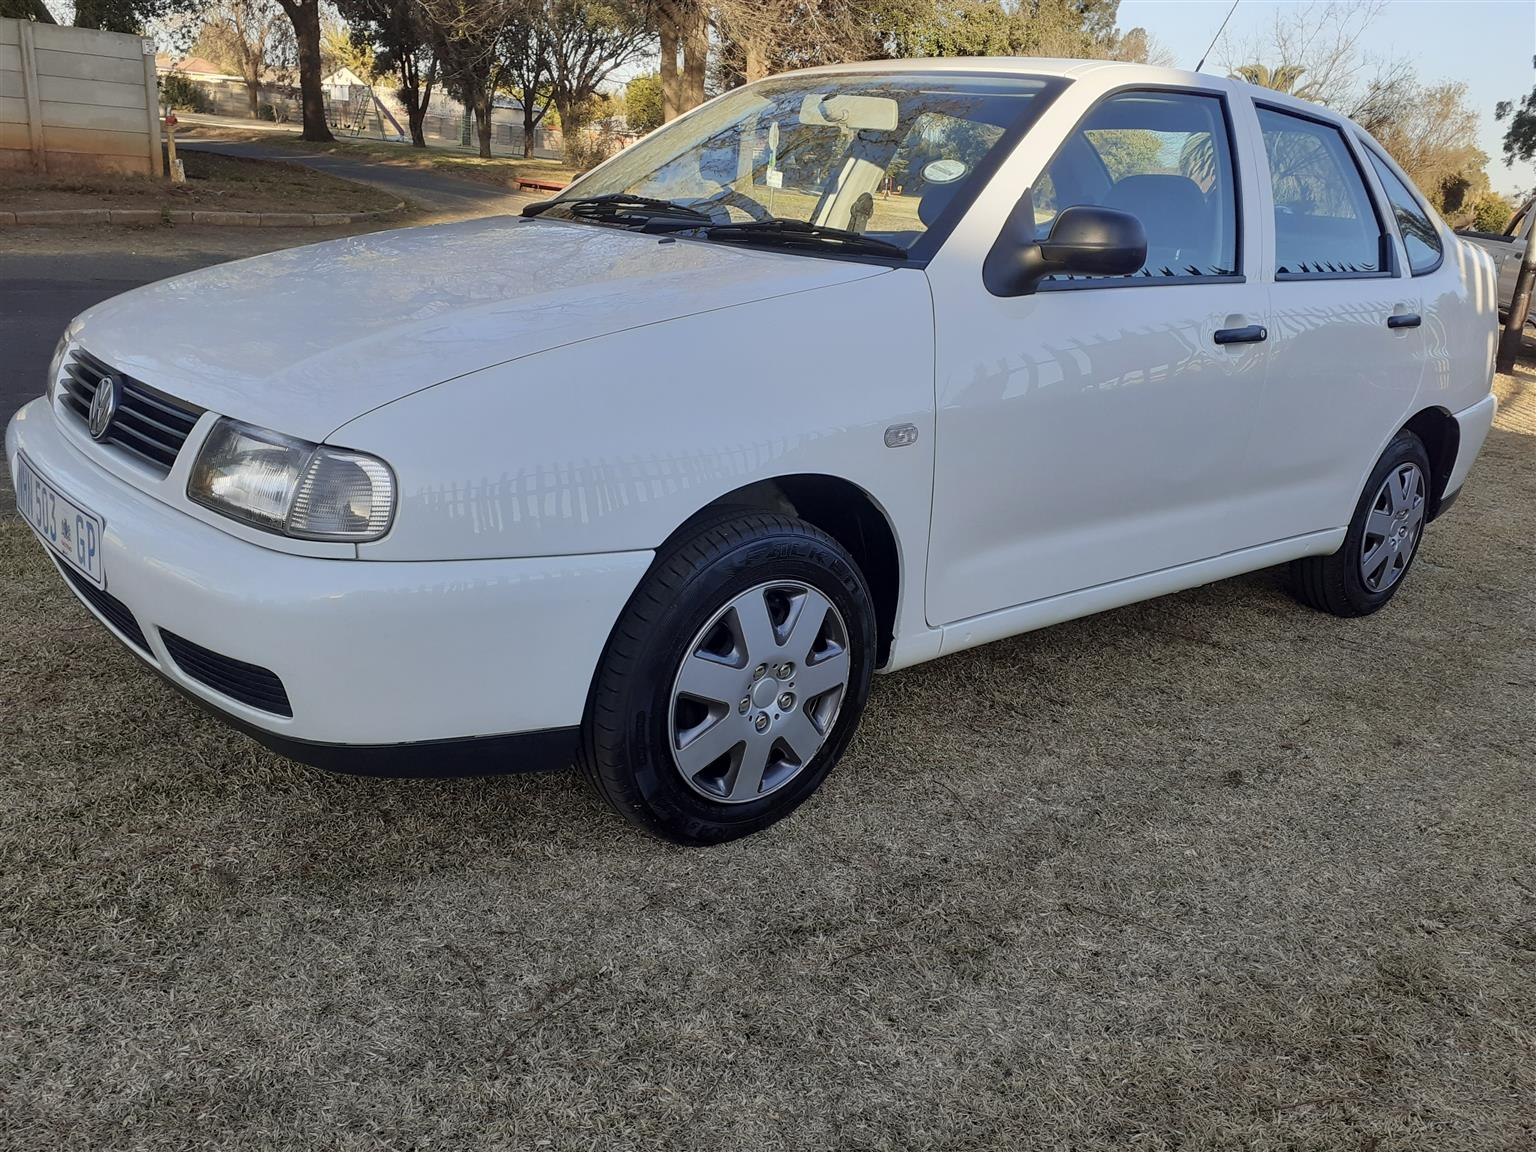 2002 Vw Polo Classic Junk Mail